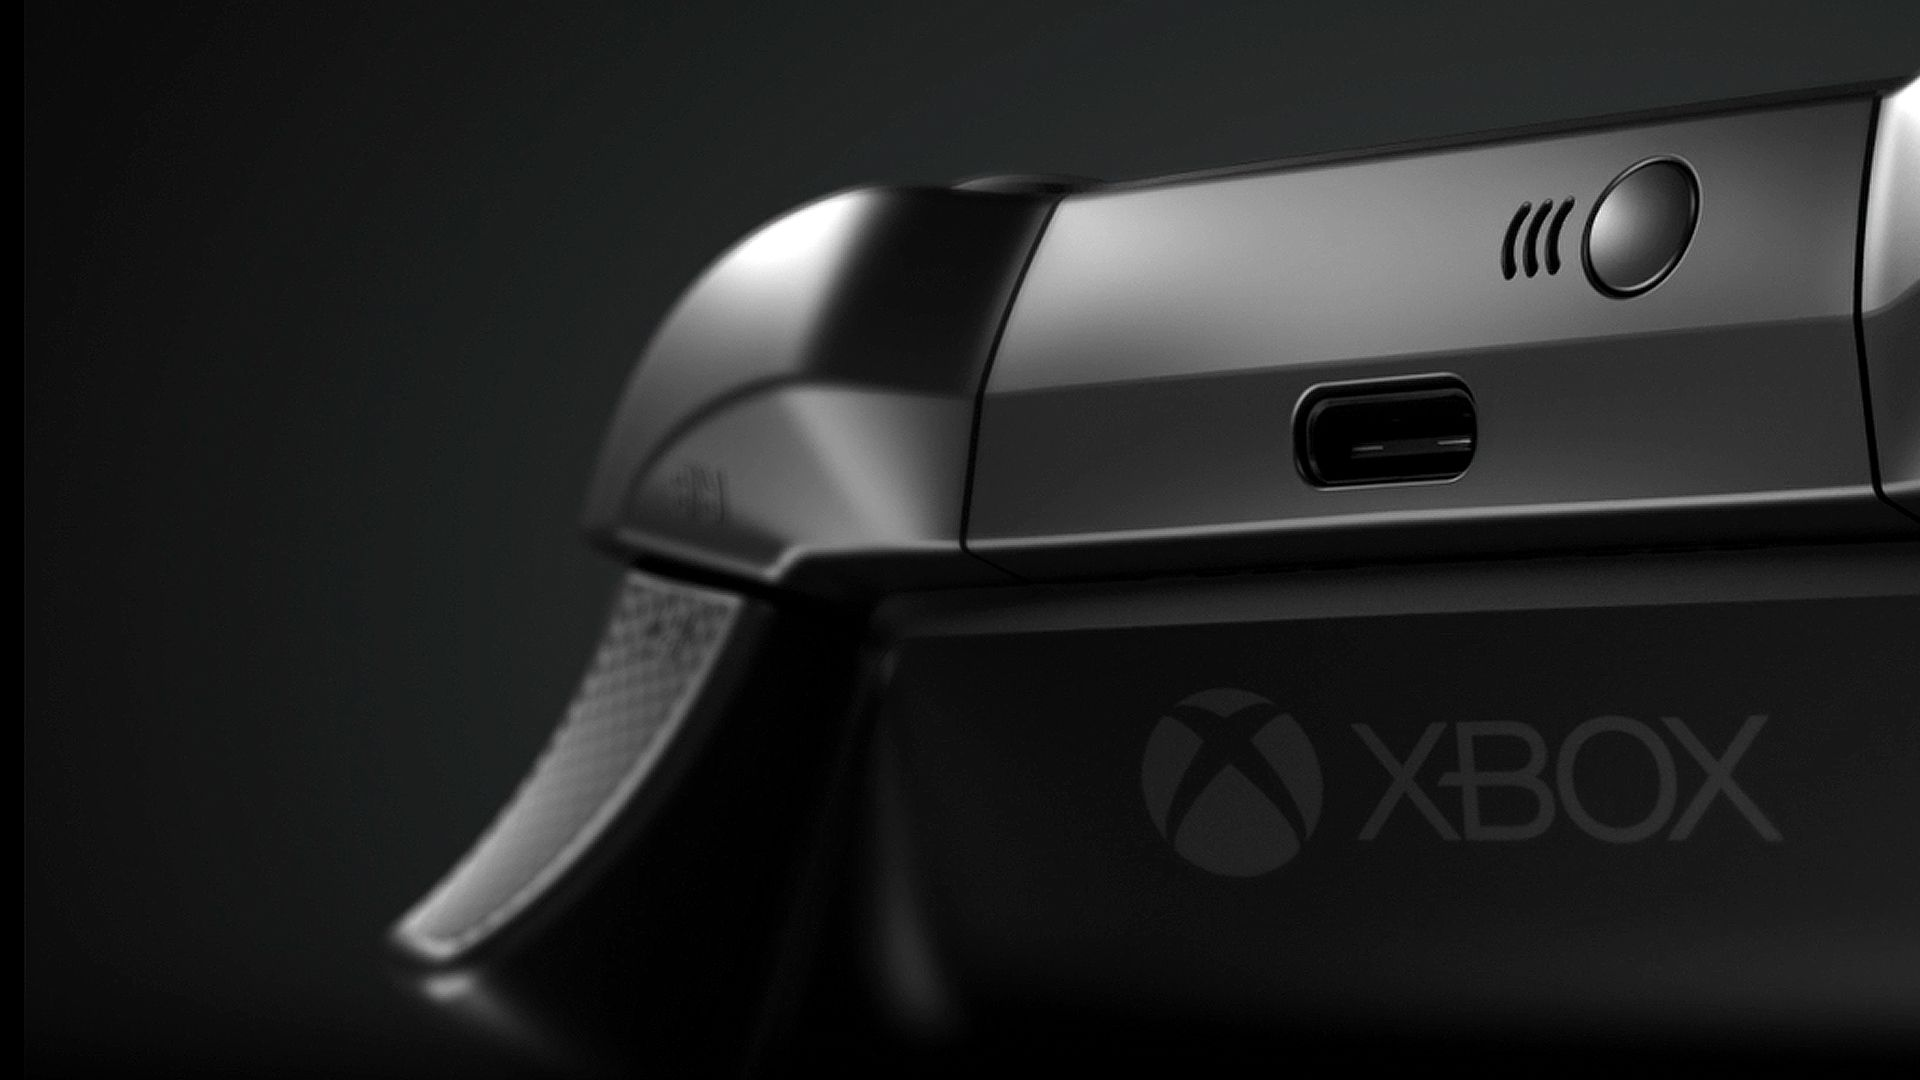 How to Connect an Xbox One Controller to an iPhone